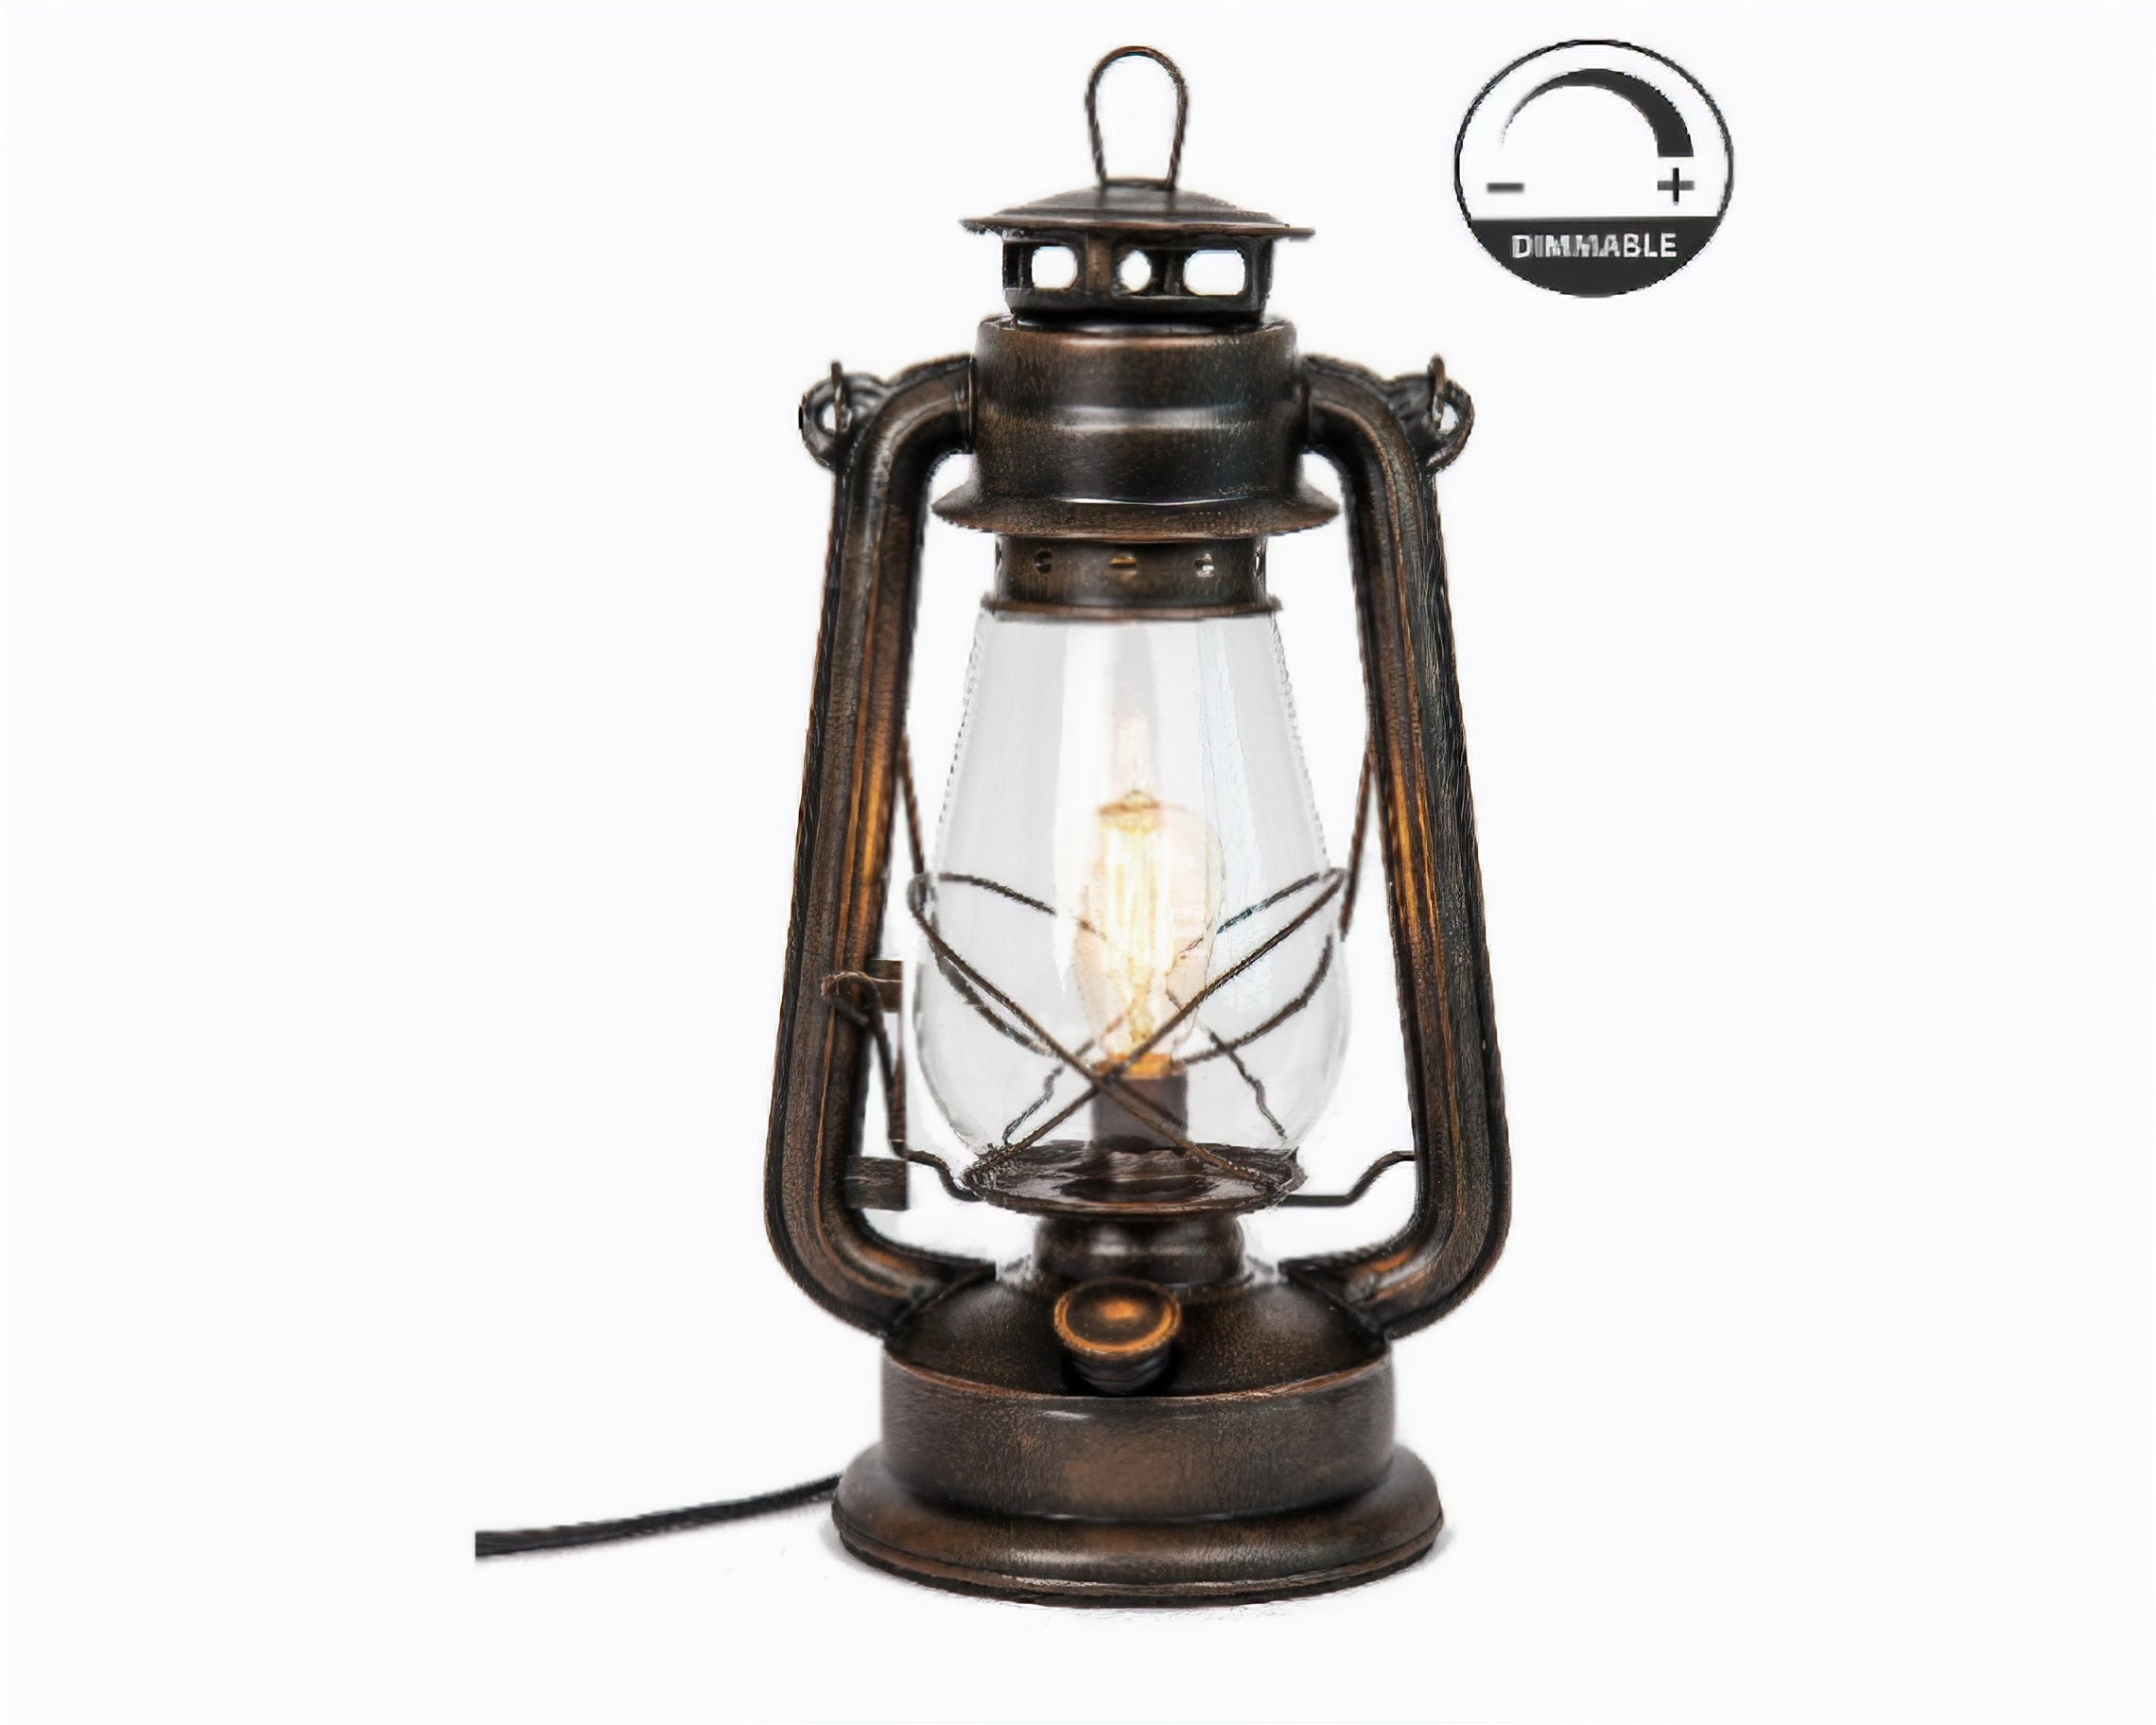 Electric Lantern Table Lamp with variable dimming controller Rust patina hand finish by Muskoka Lifestyle Products (Edison Bulb Included)